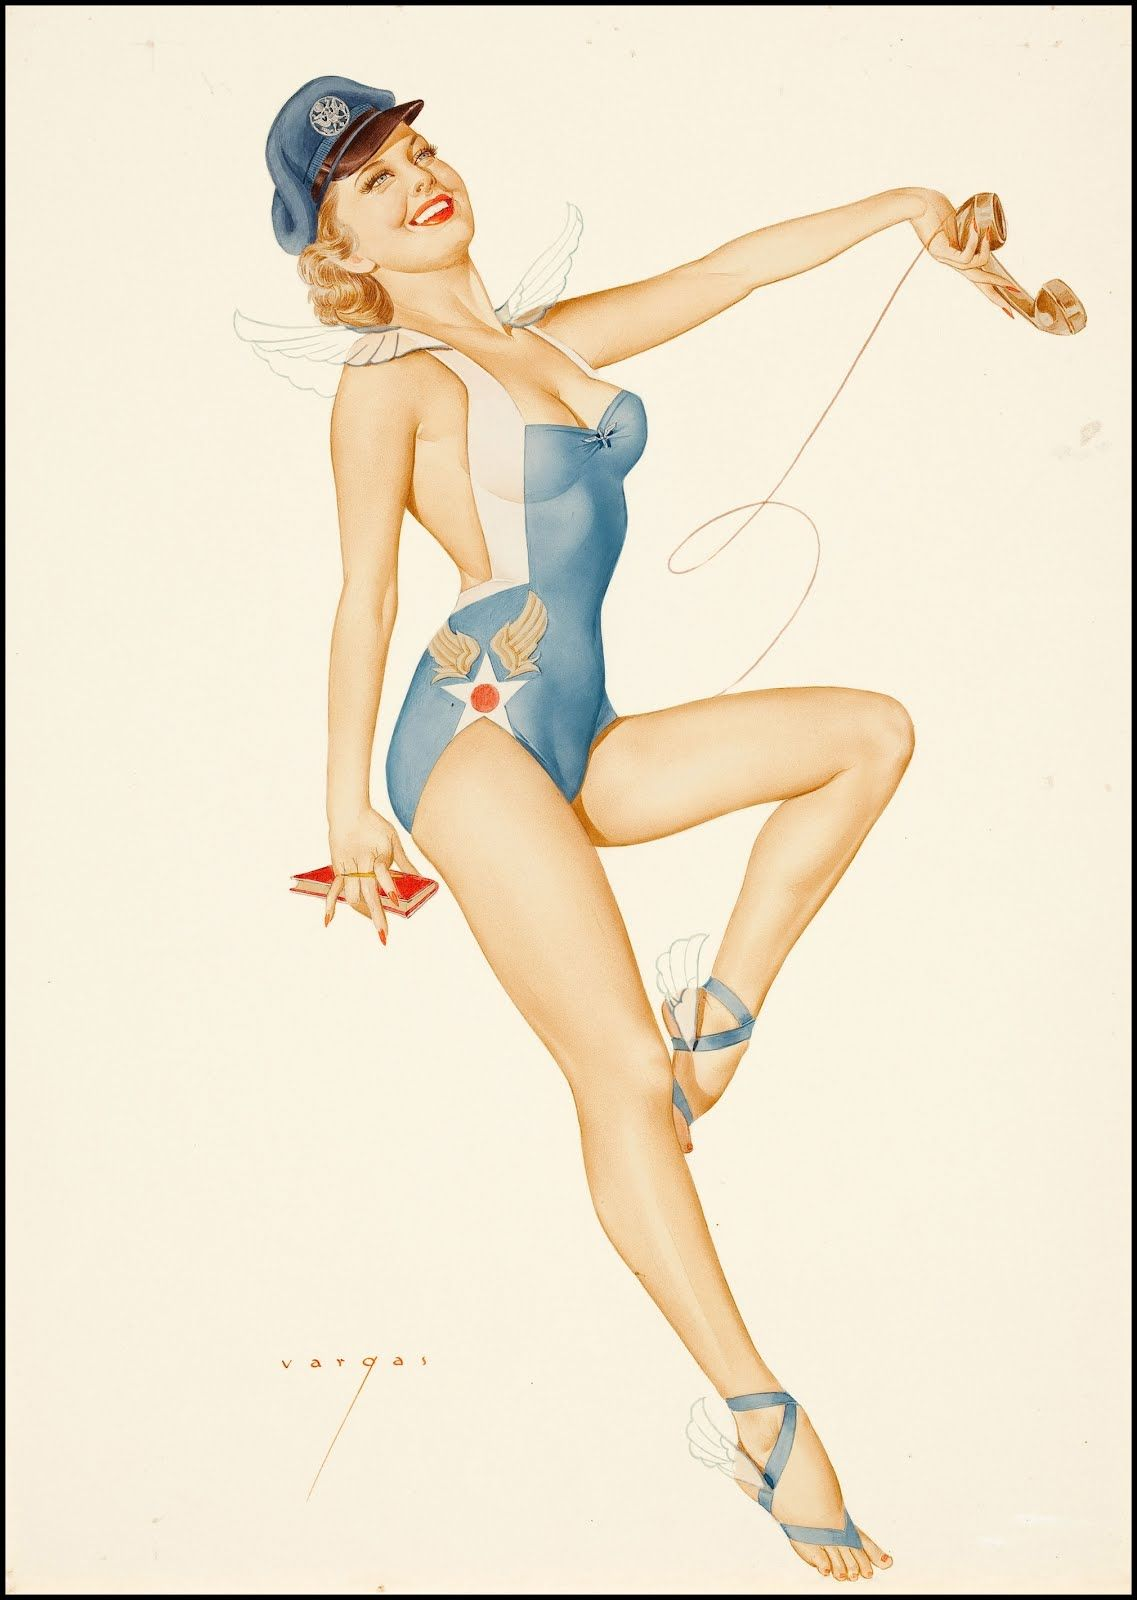 vargas pin up girls | pin up & burlesque ...